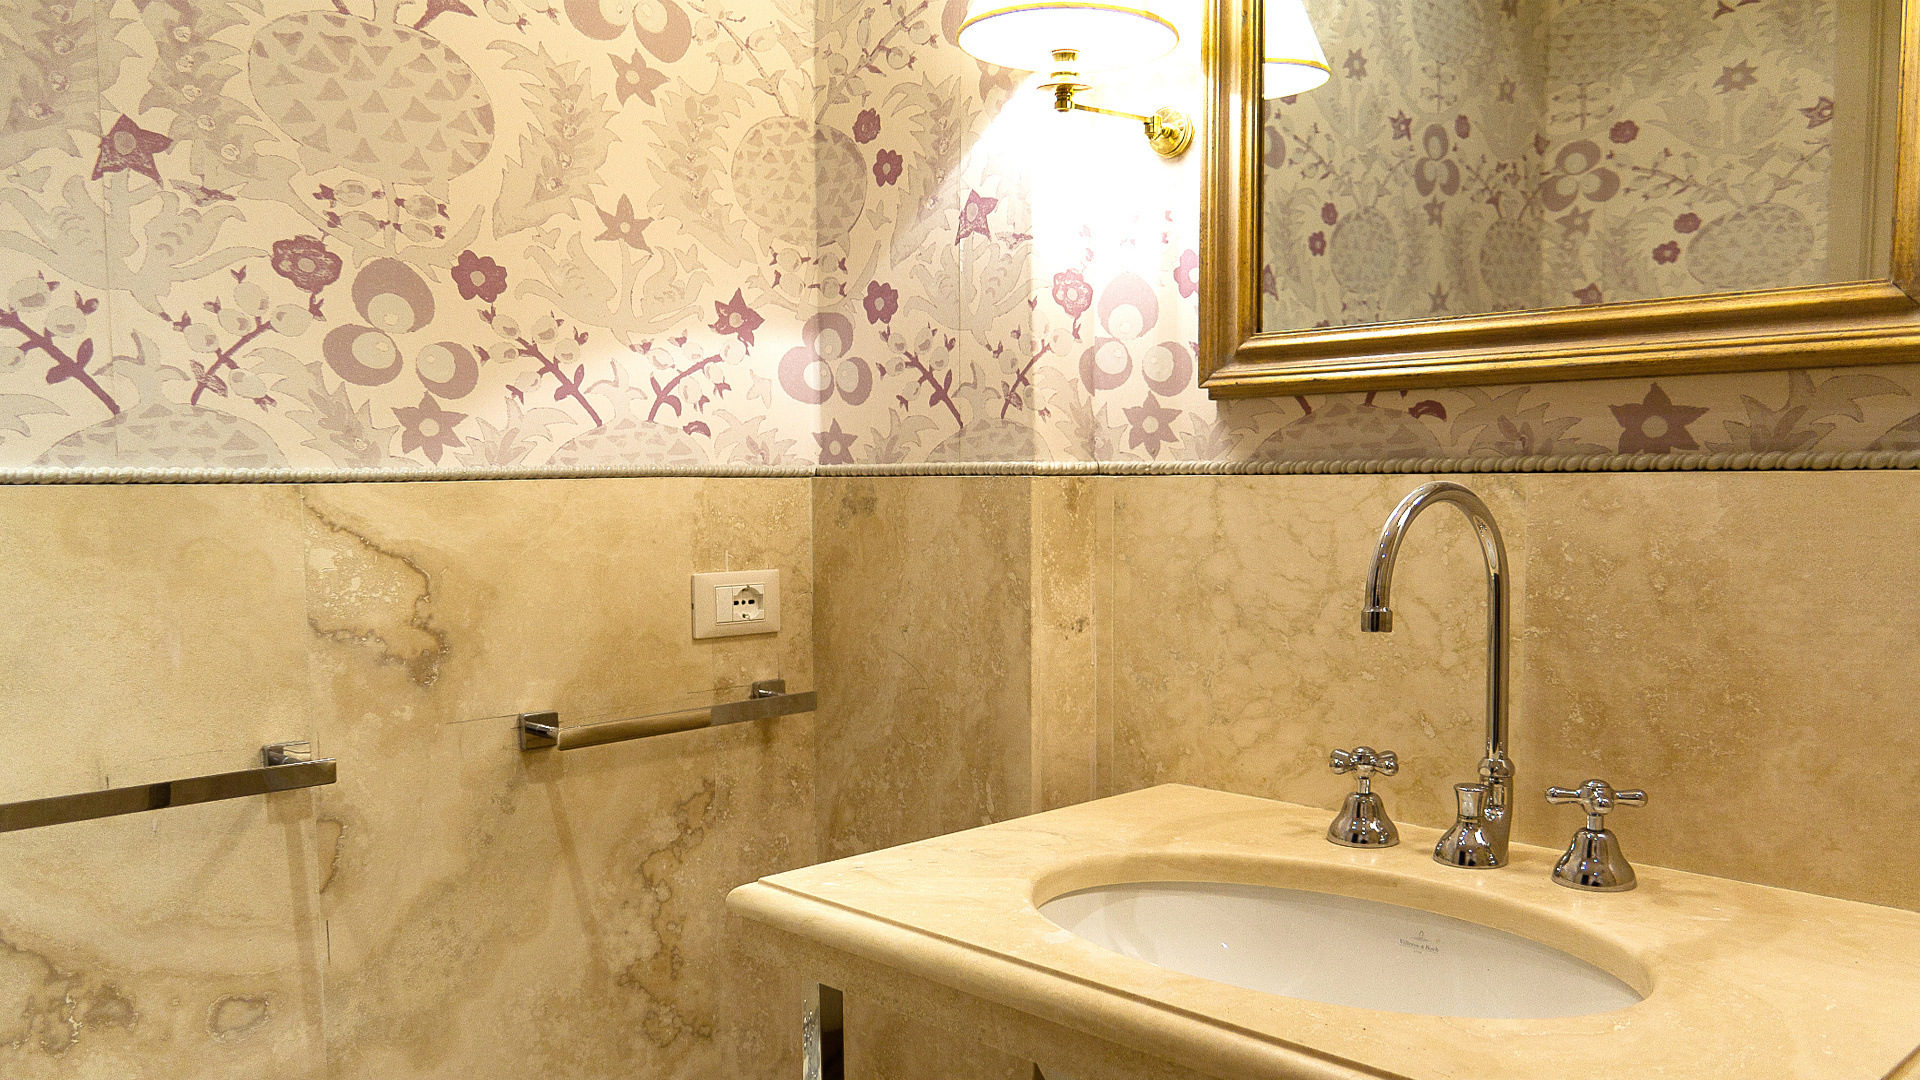 Travertine bathroom wall tiles – Pietre di Rapolano, Florence (Tuscany)